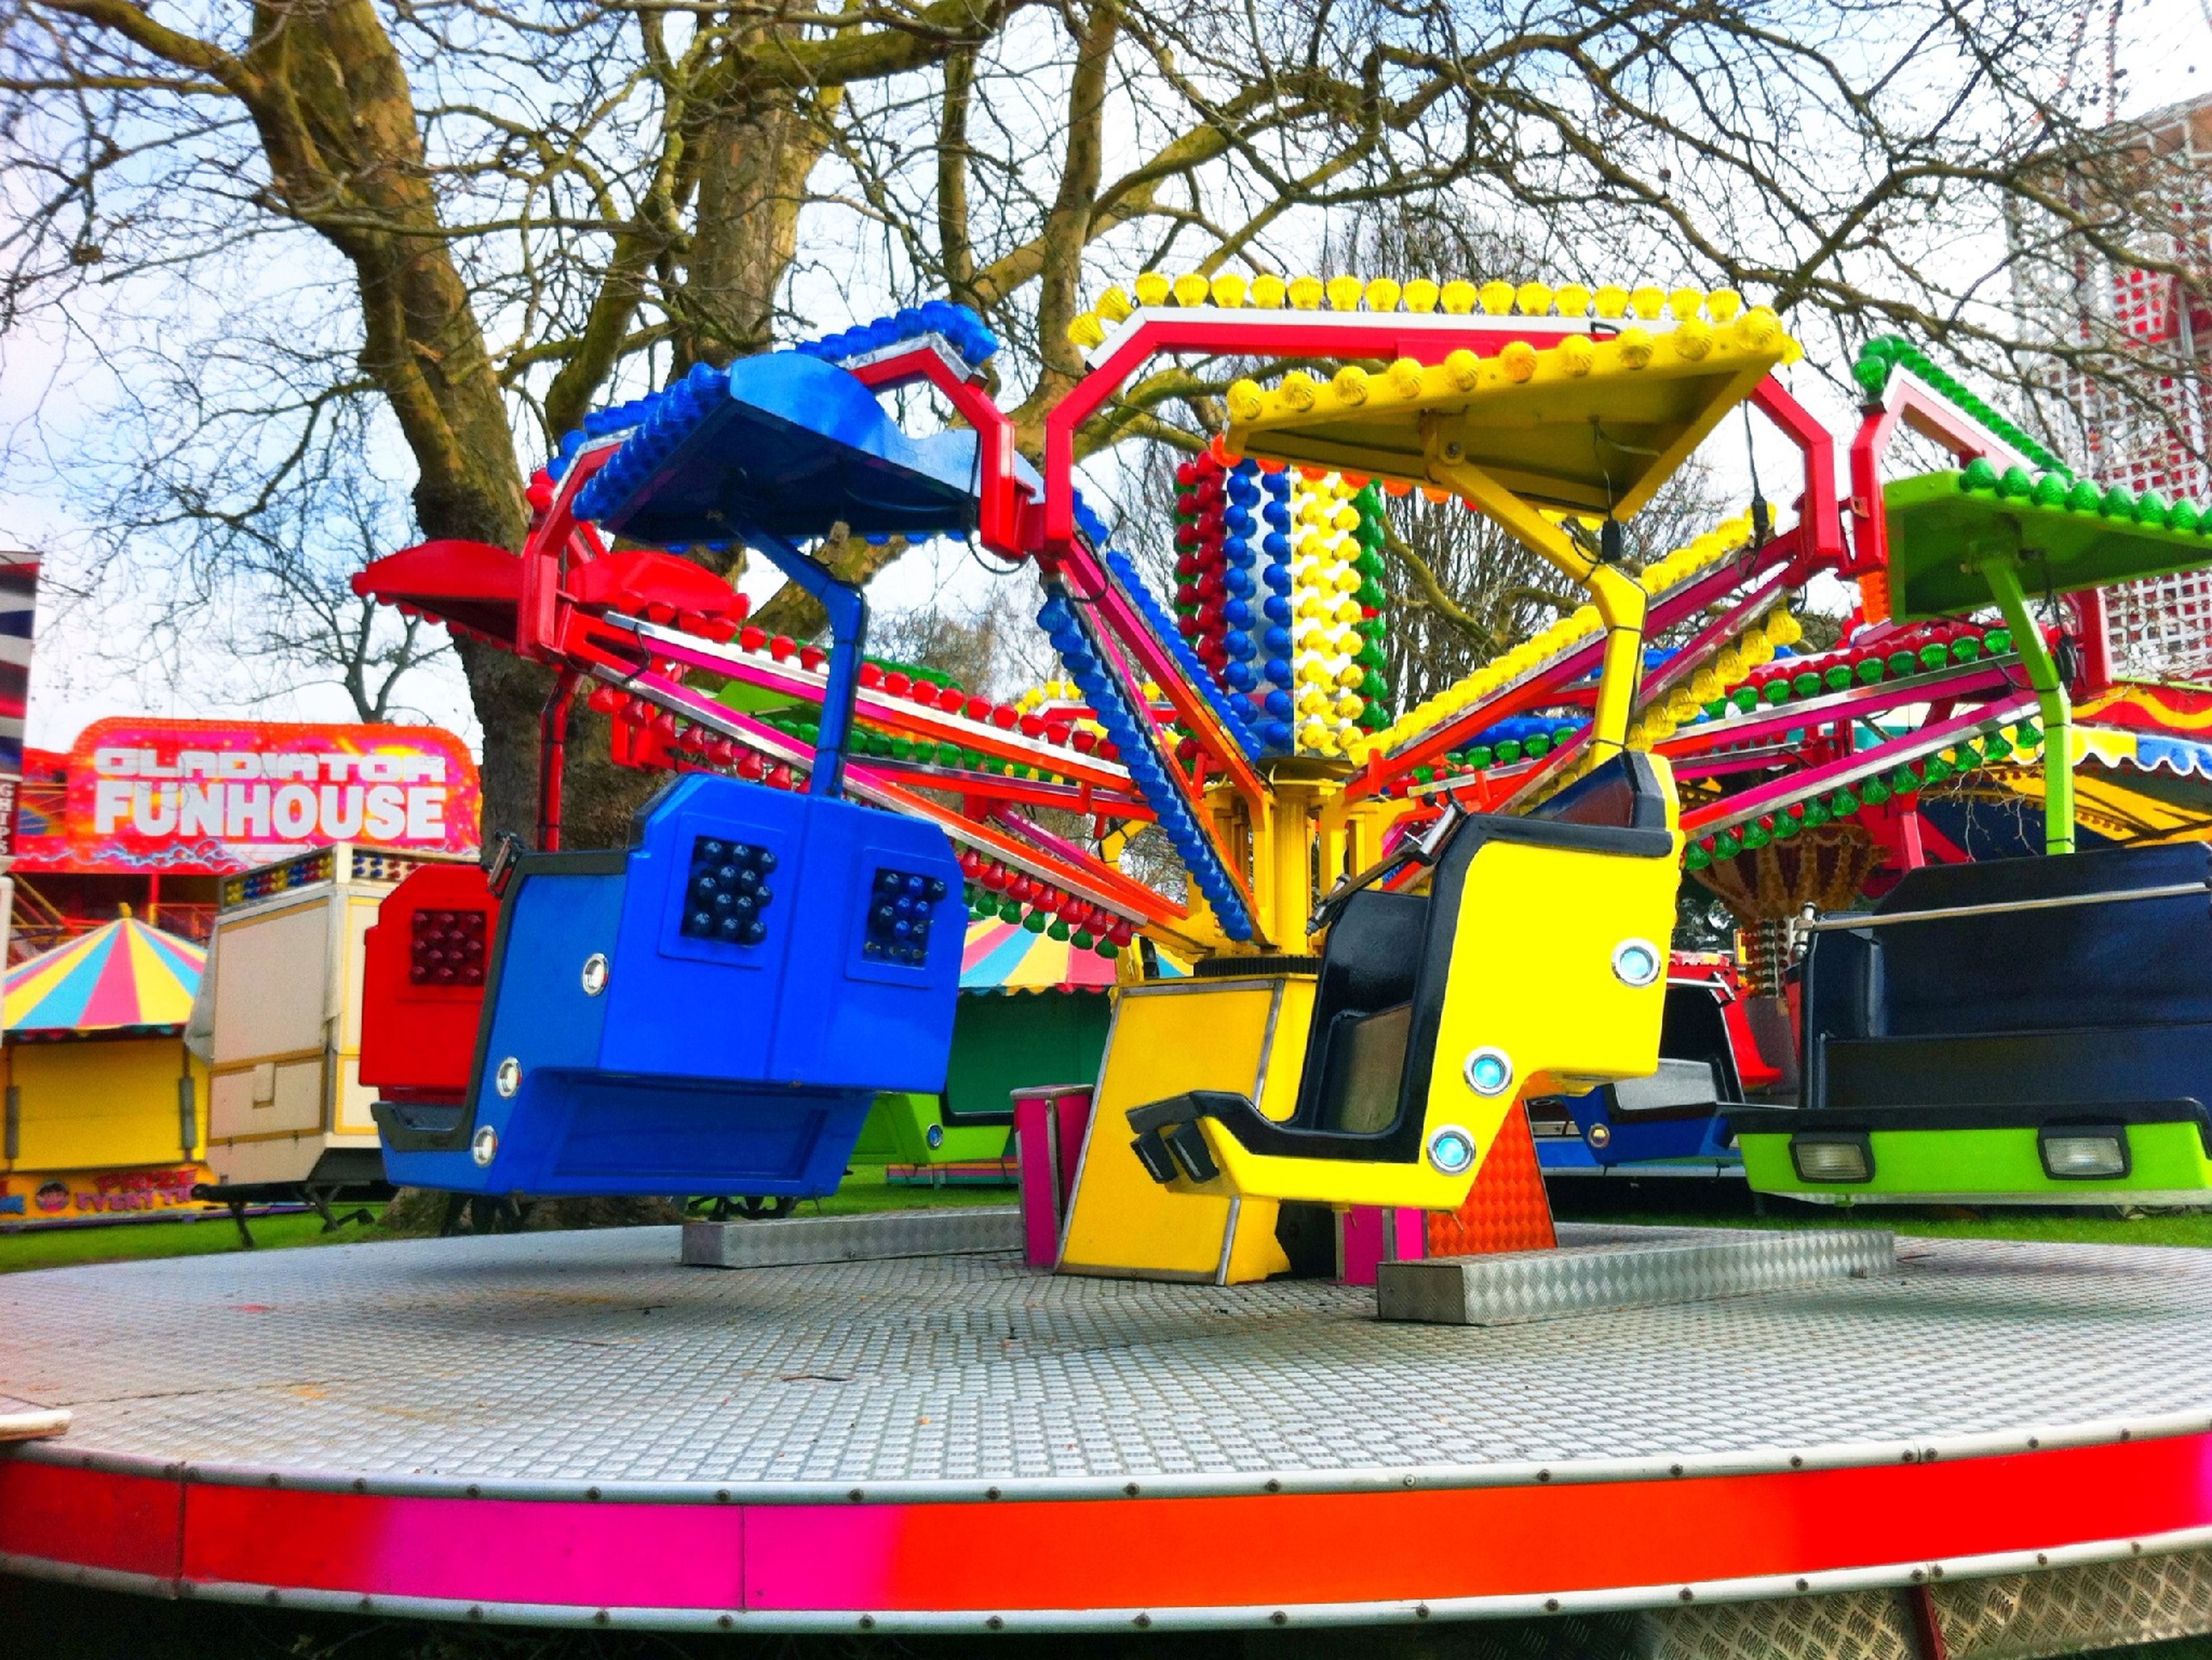 tree, multi colored, built structure, red, transportation, blue, architecture, building exterior, day, metal, land vehicle, outdoors, mode of transport, railing, yellow, no people, sunlight, playground, low angle view, childhood